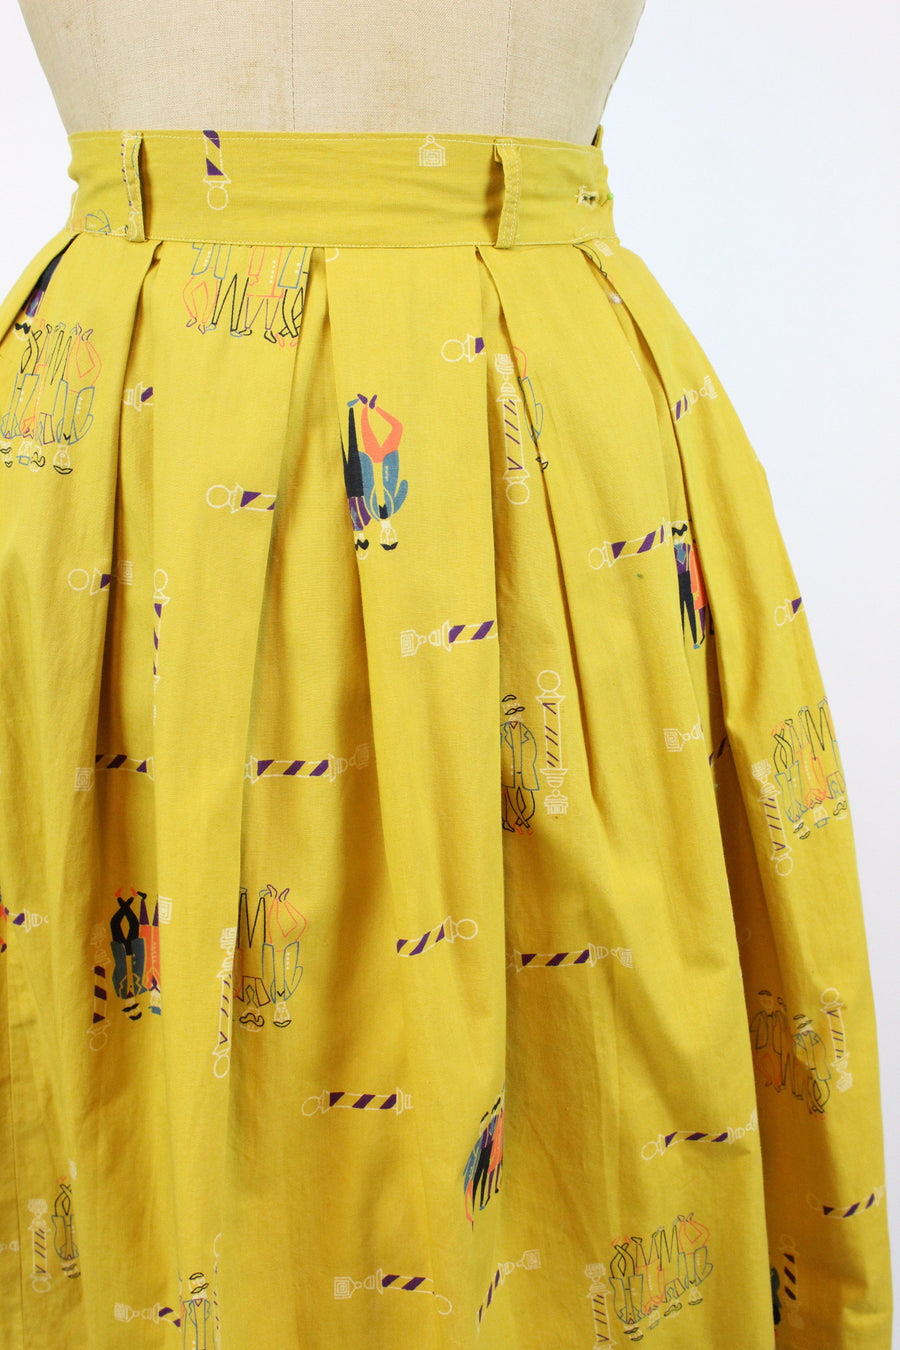 1950s barbershop quartet novelty print skirt xxs | vintage cotton skirt | new in